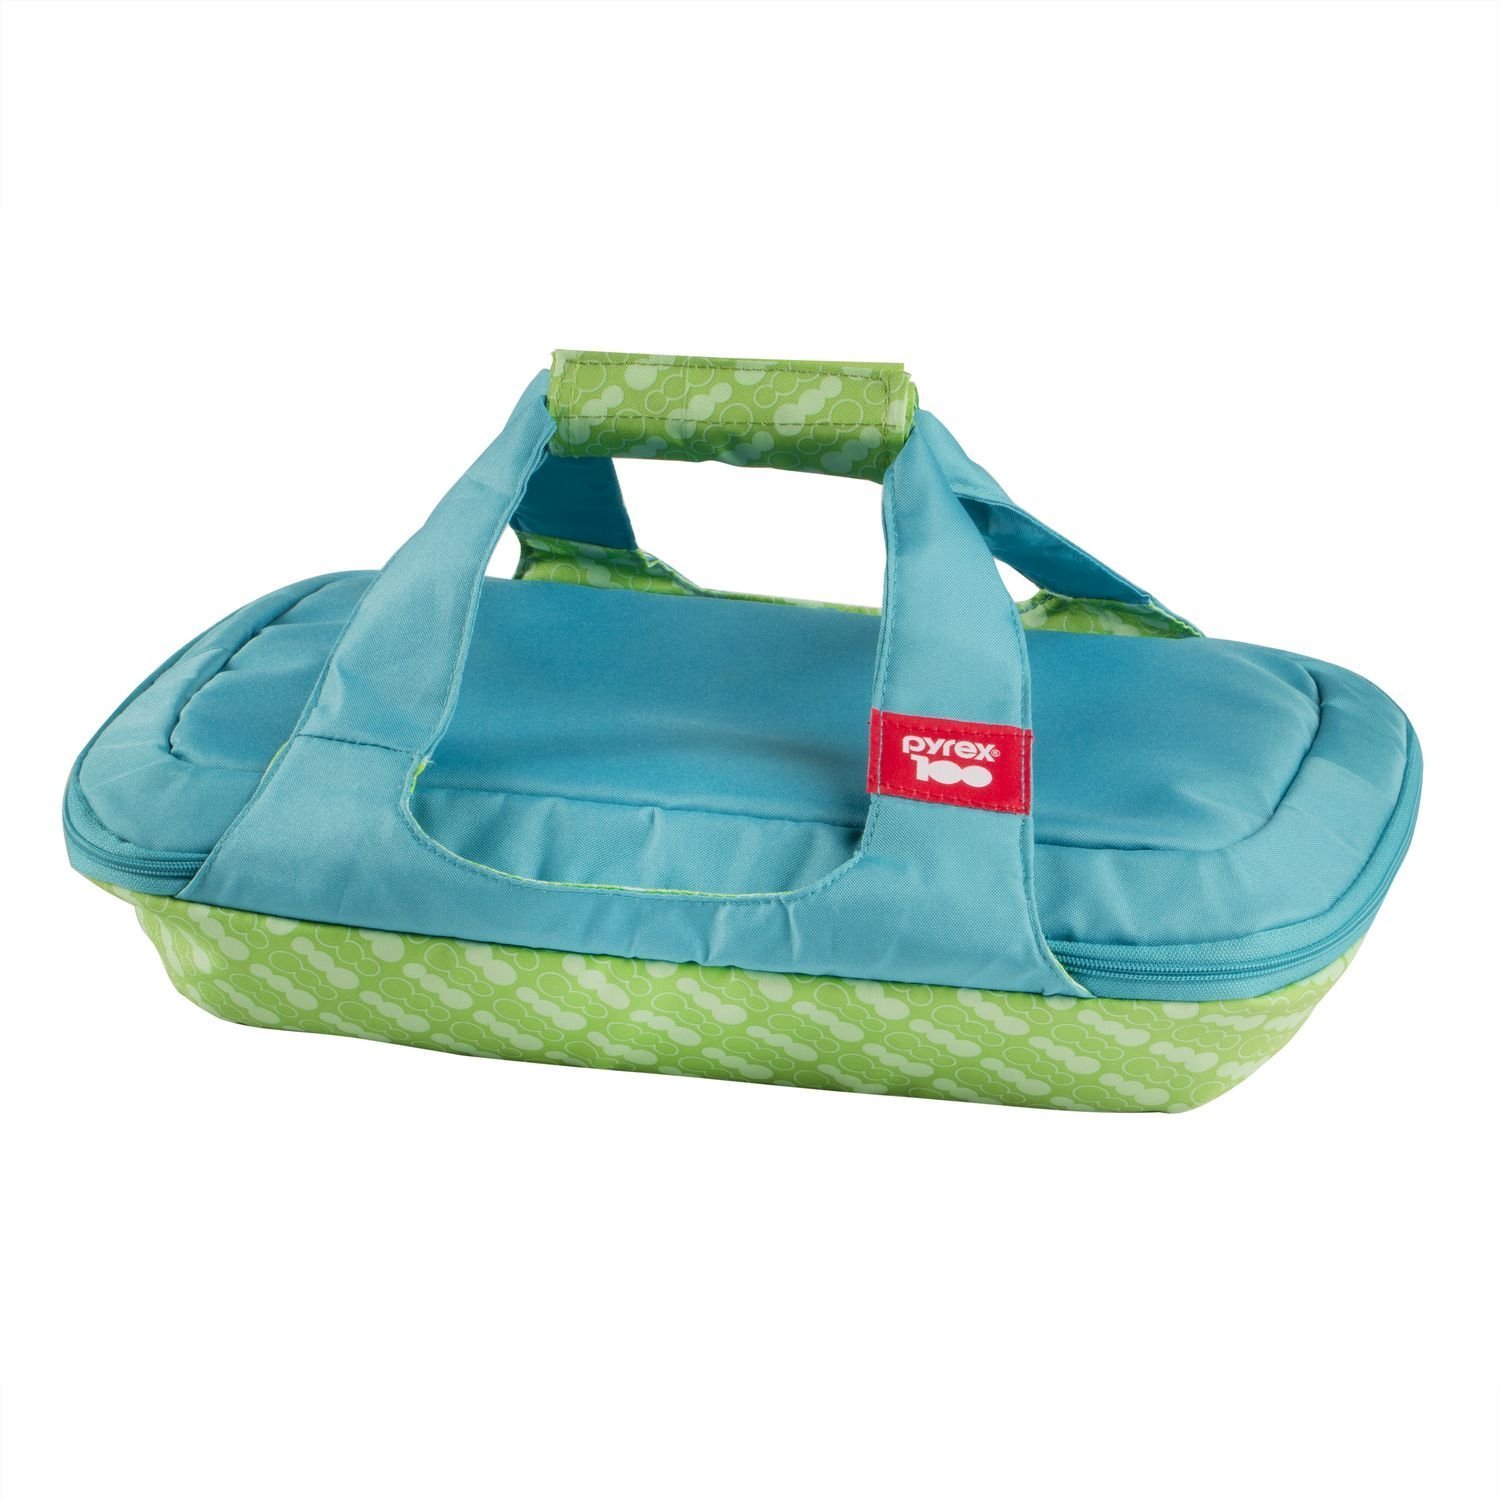 Pyrex 100 Portables 100th Anniversary 3-qt Bag, Green/Blue